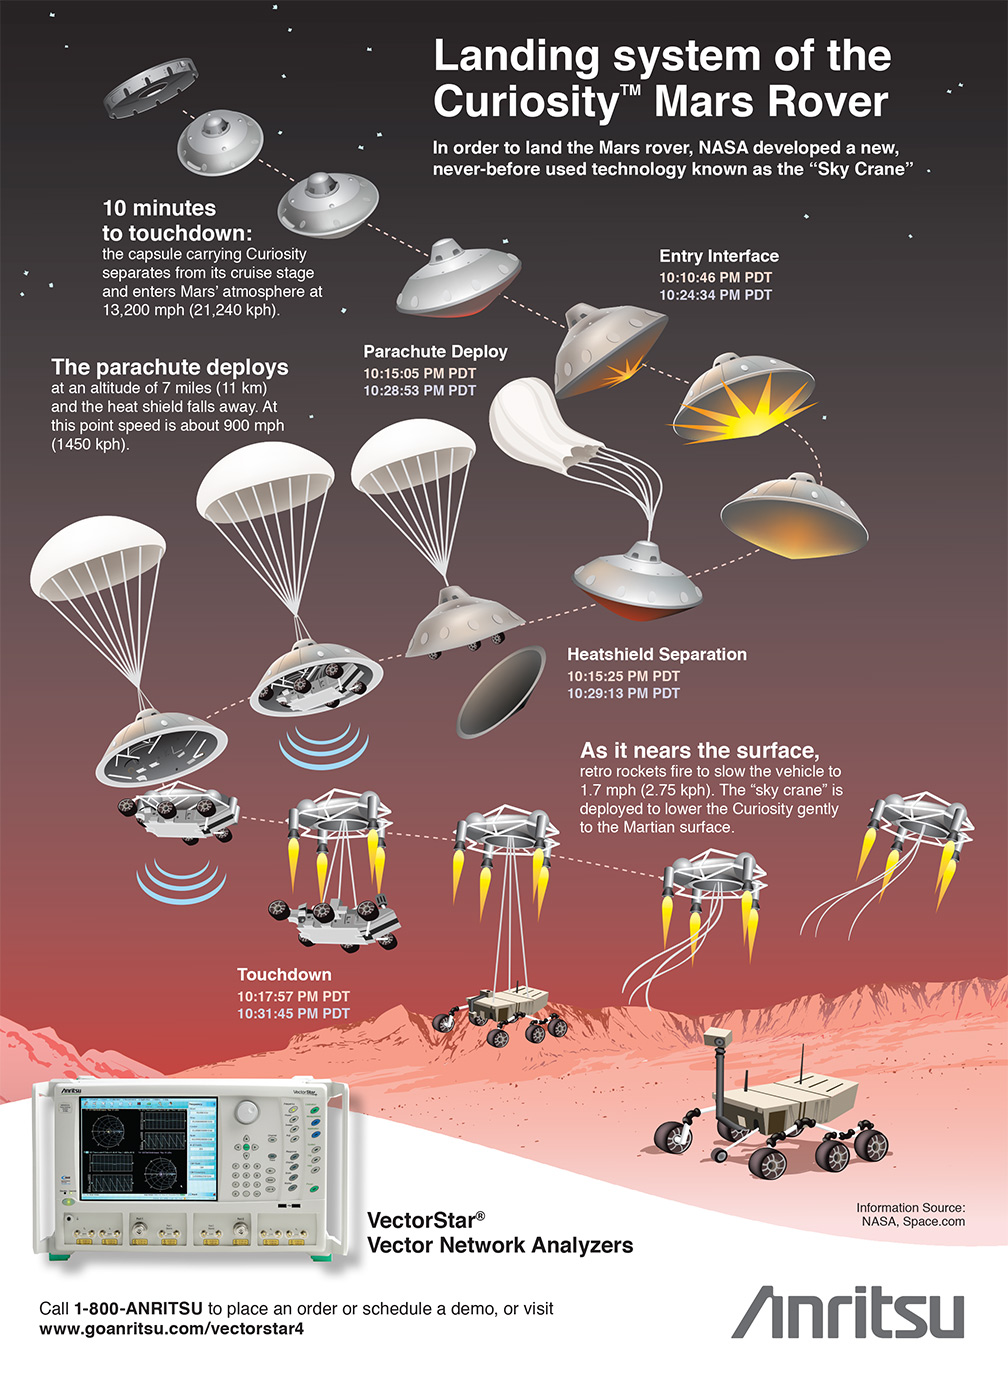 Landing System Of The Curiositytm Mars Rover